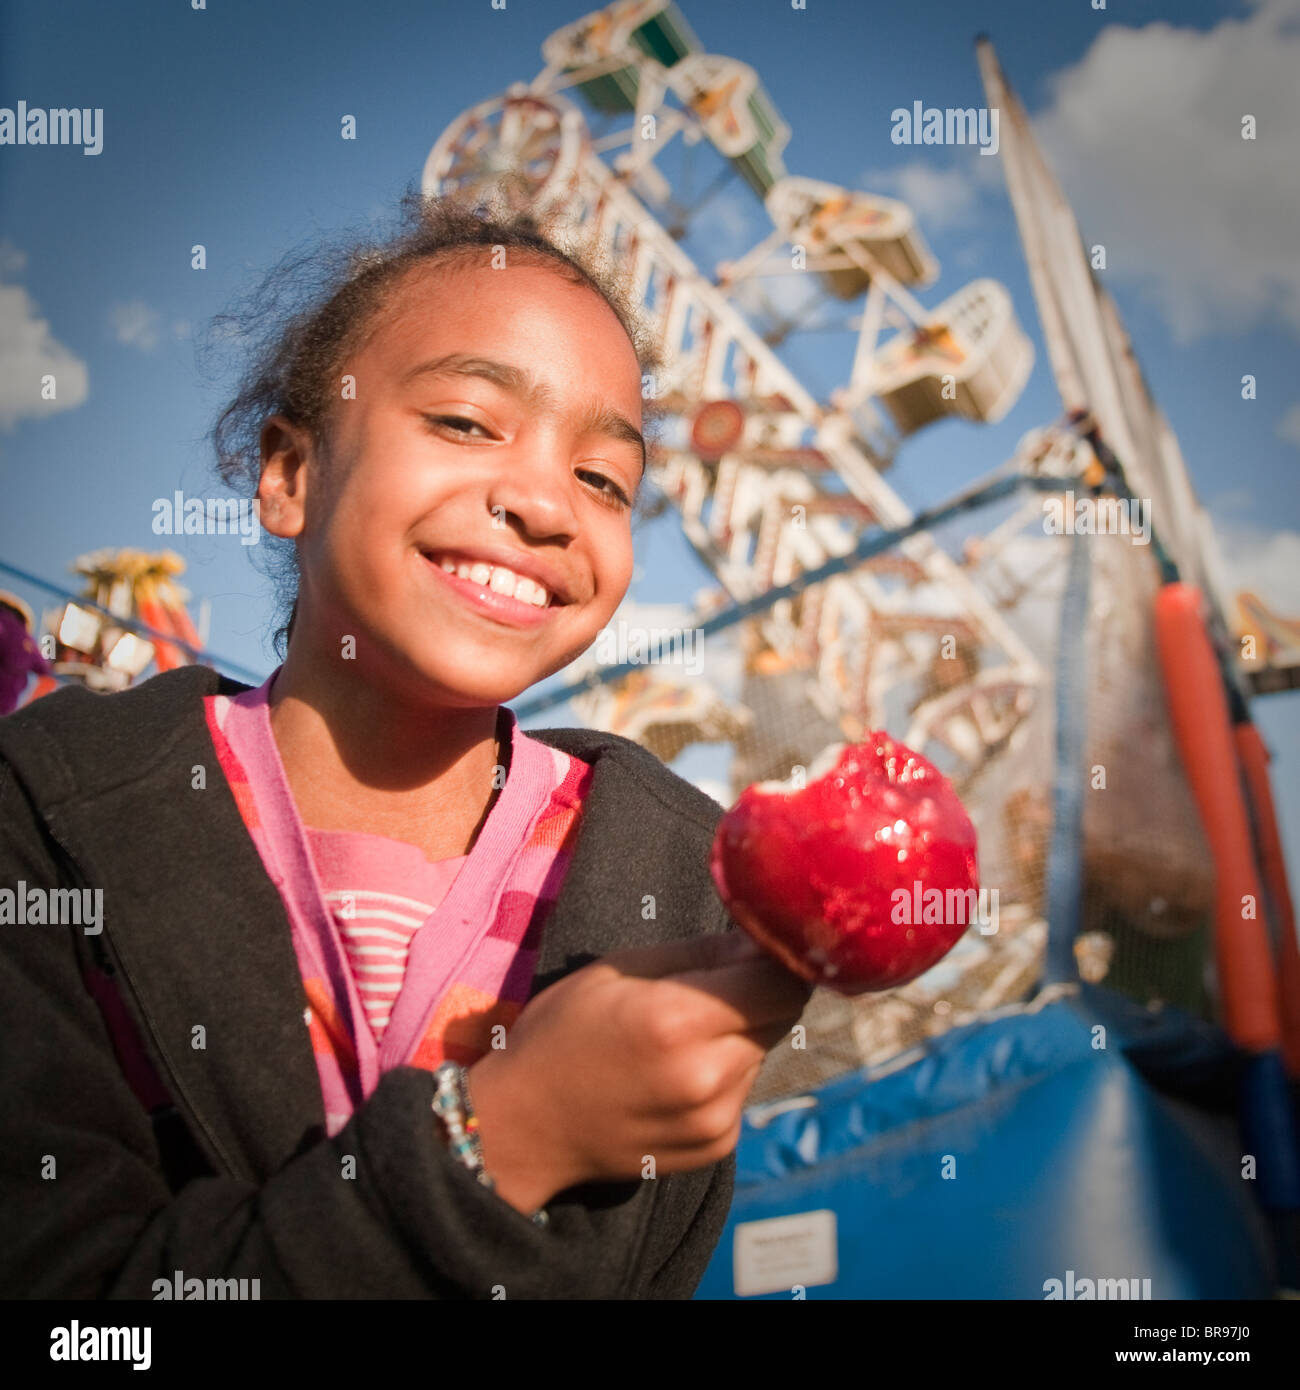 girl eats a candied apple at a state/county fair Stock Photo